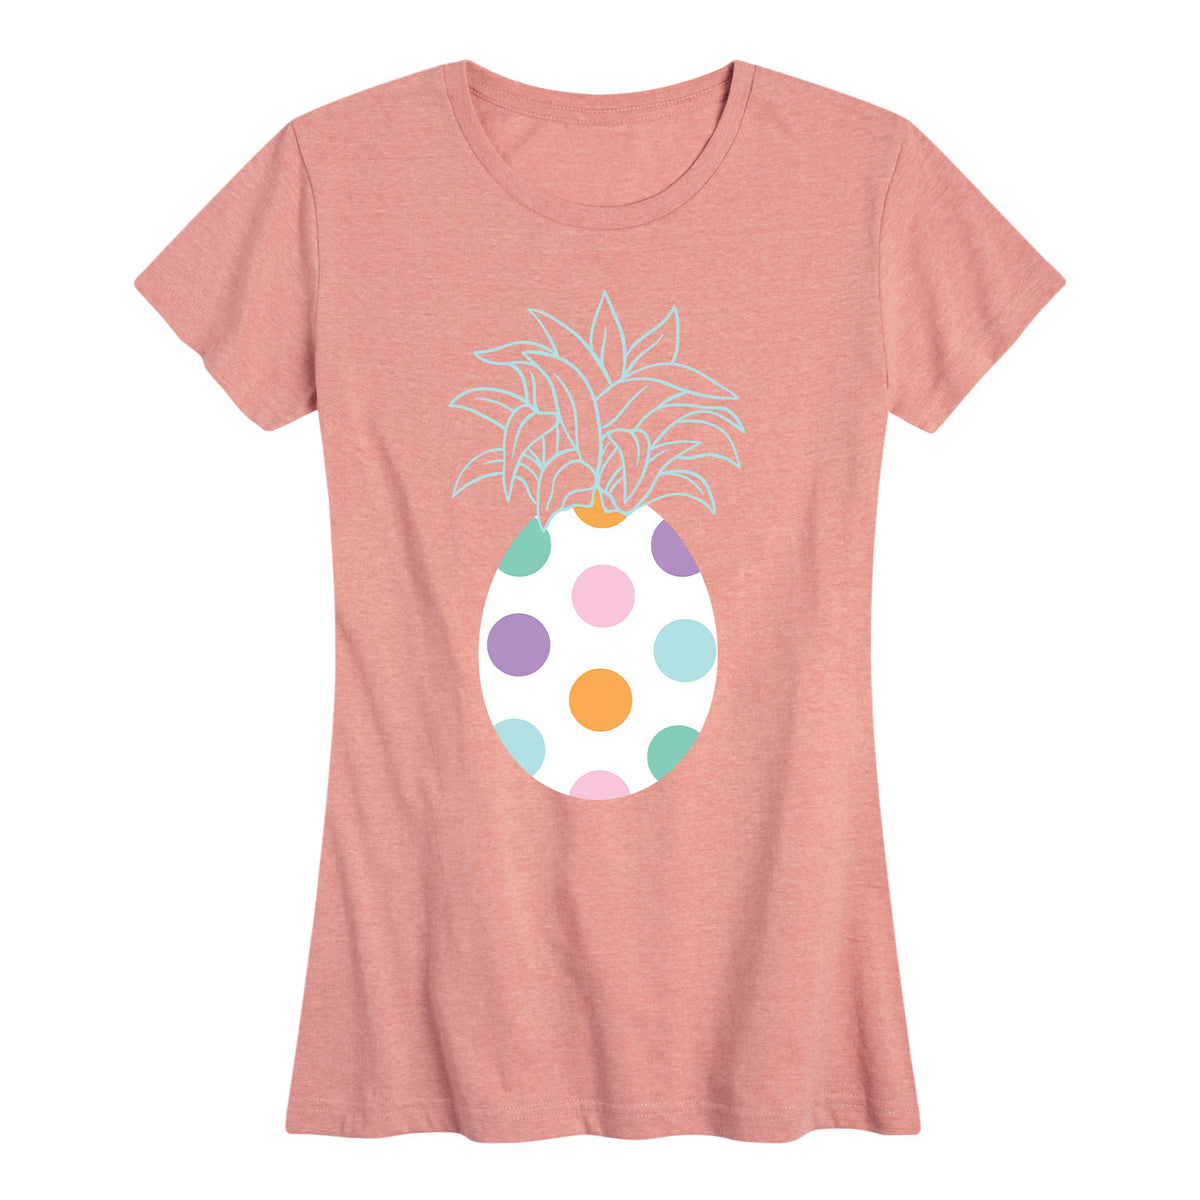 Easter Egg Pineapple - Women's Short Sleeve T-Shirt